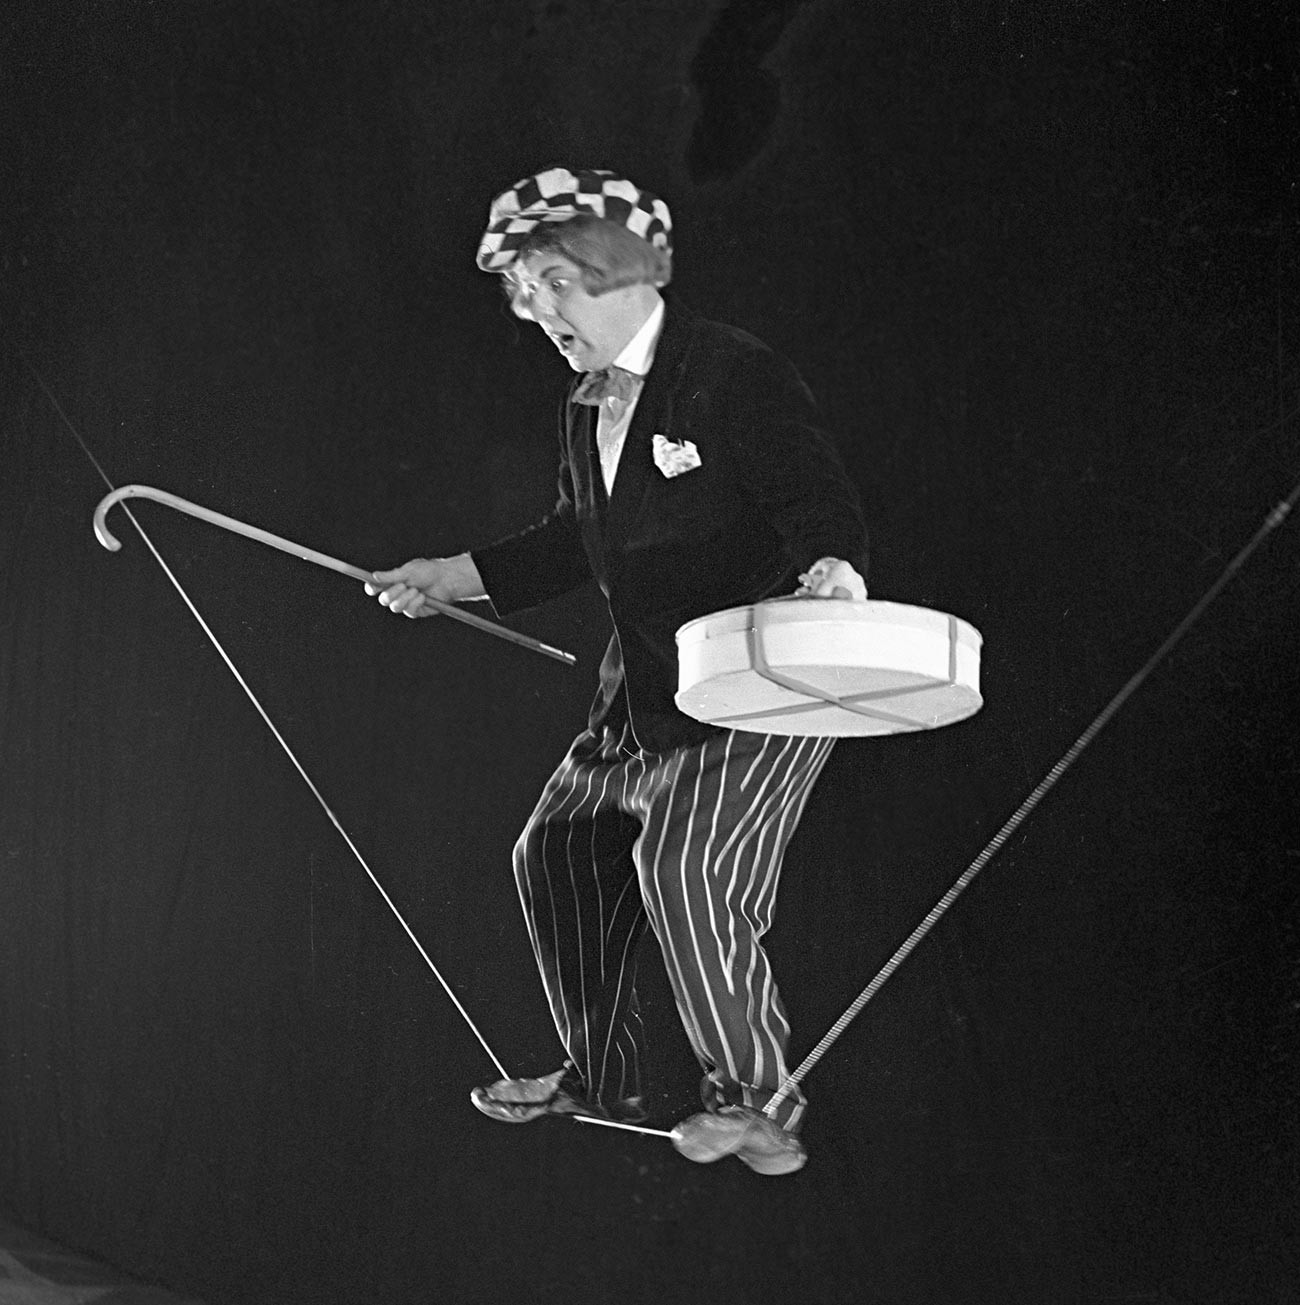 Popov's first professional circus experience was that of an 'eccentric tightrope walker'.